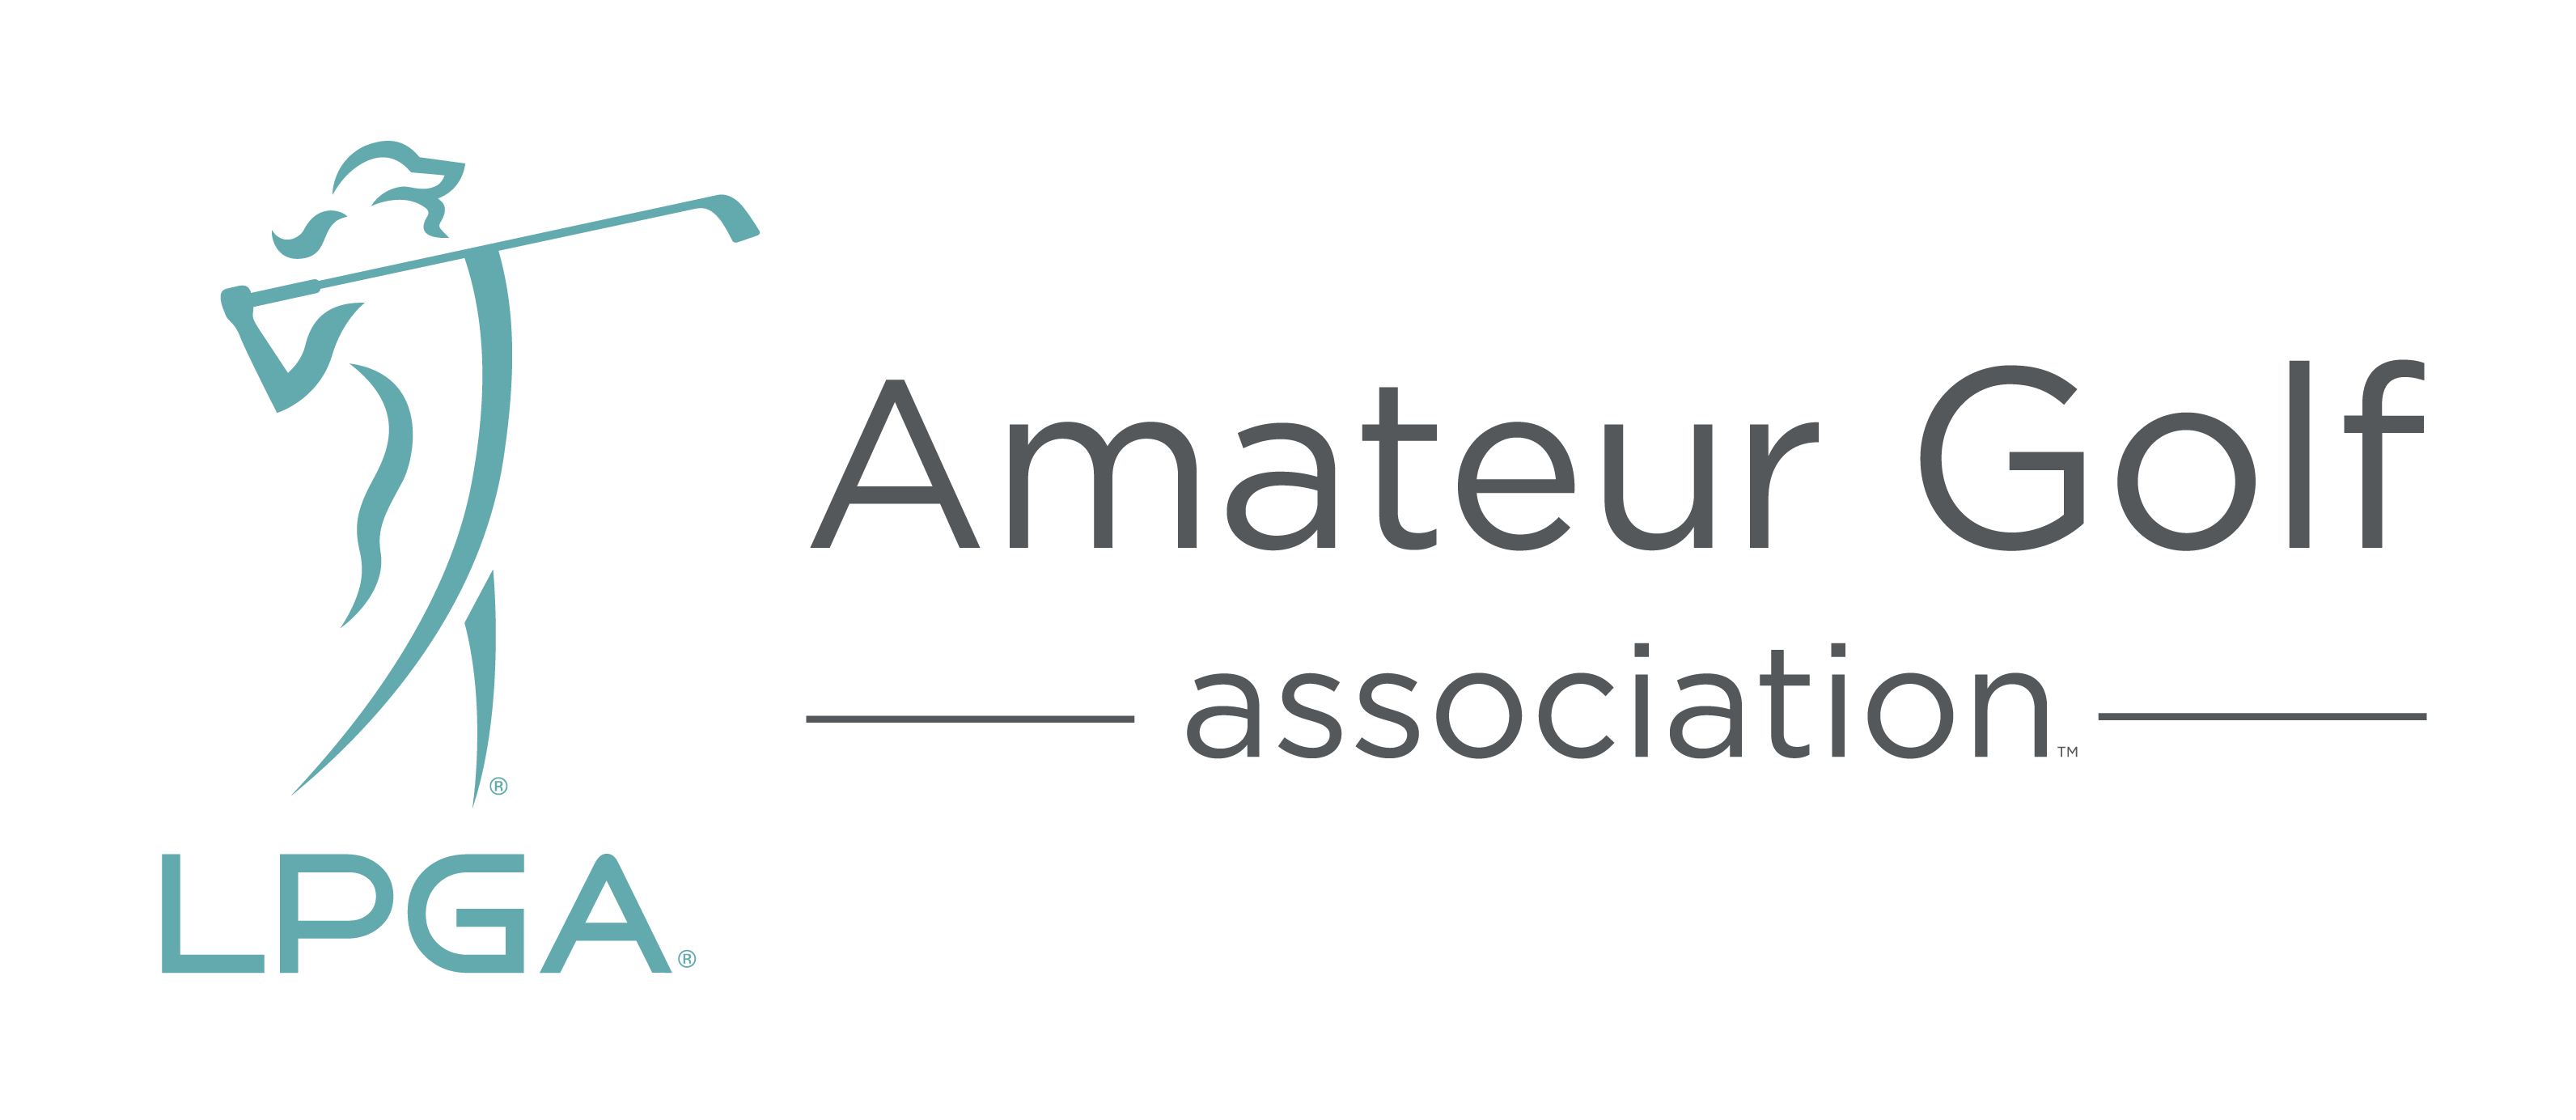 LPGA Amateur Golf Association logo